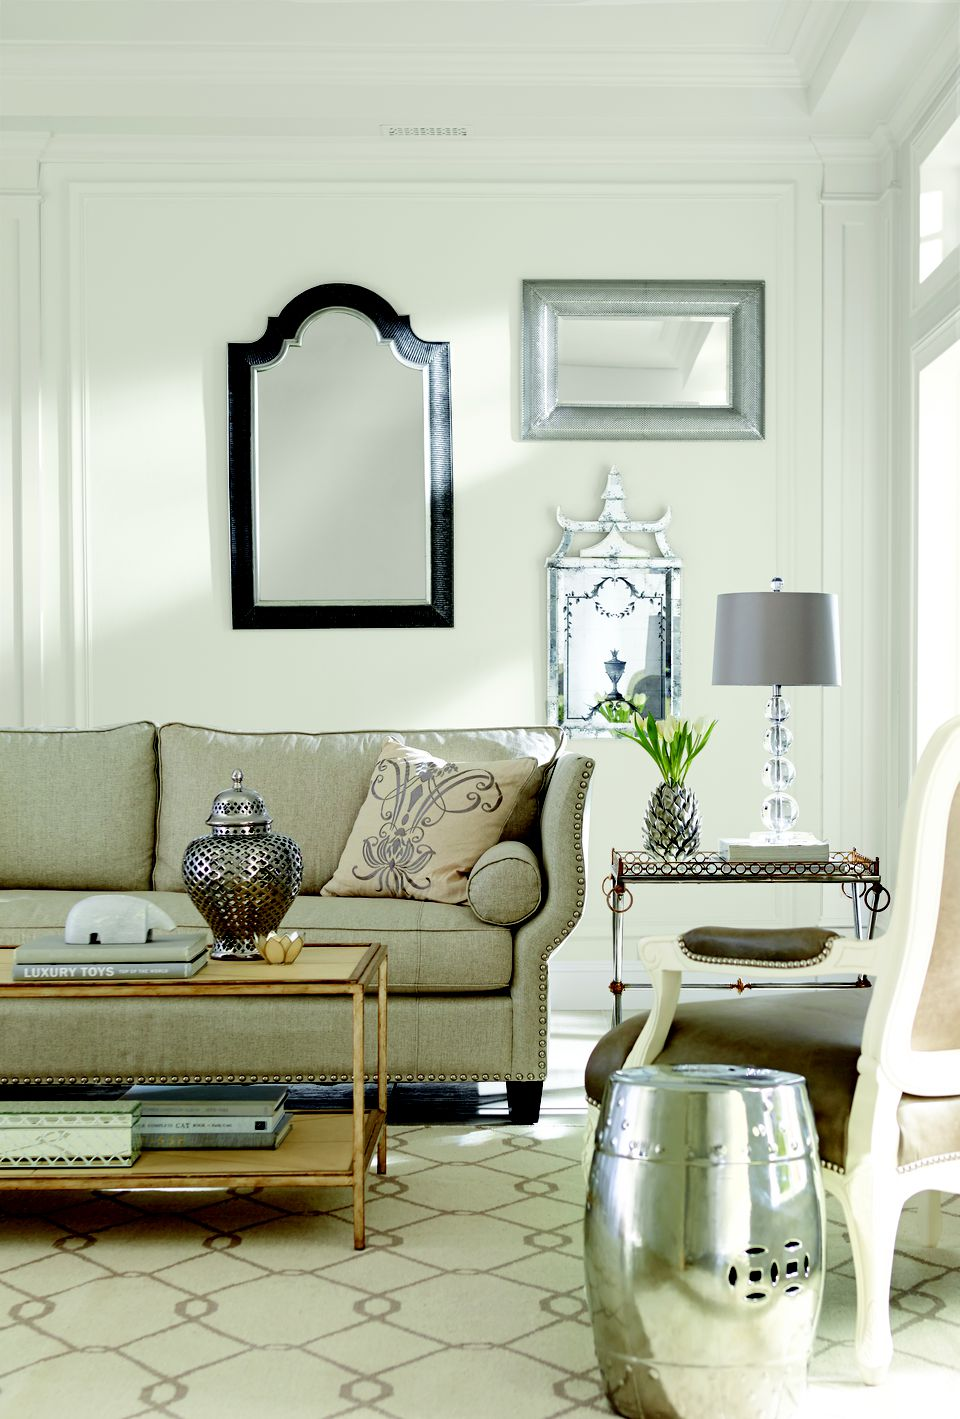 Sherwin Williams Living Room See Rooms Featuring Sherwinwilliams' Alabaster